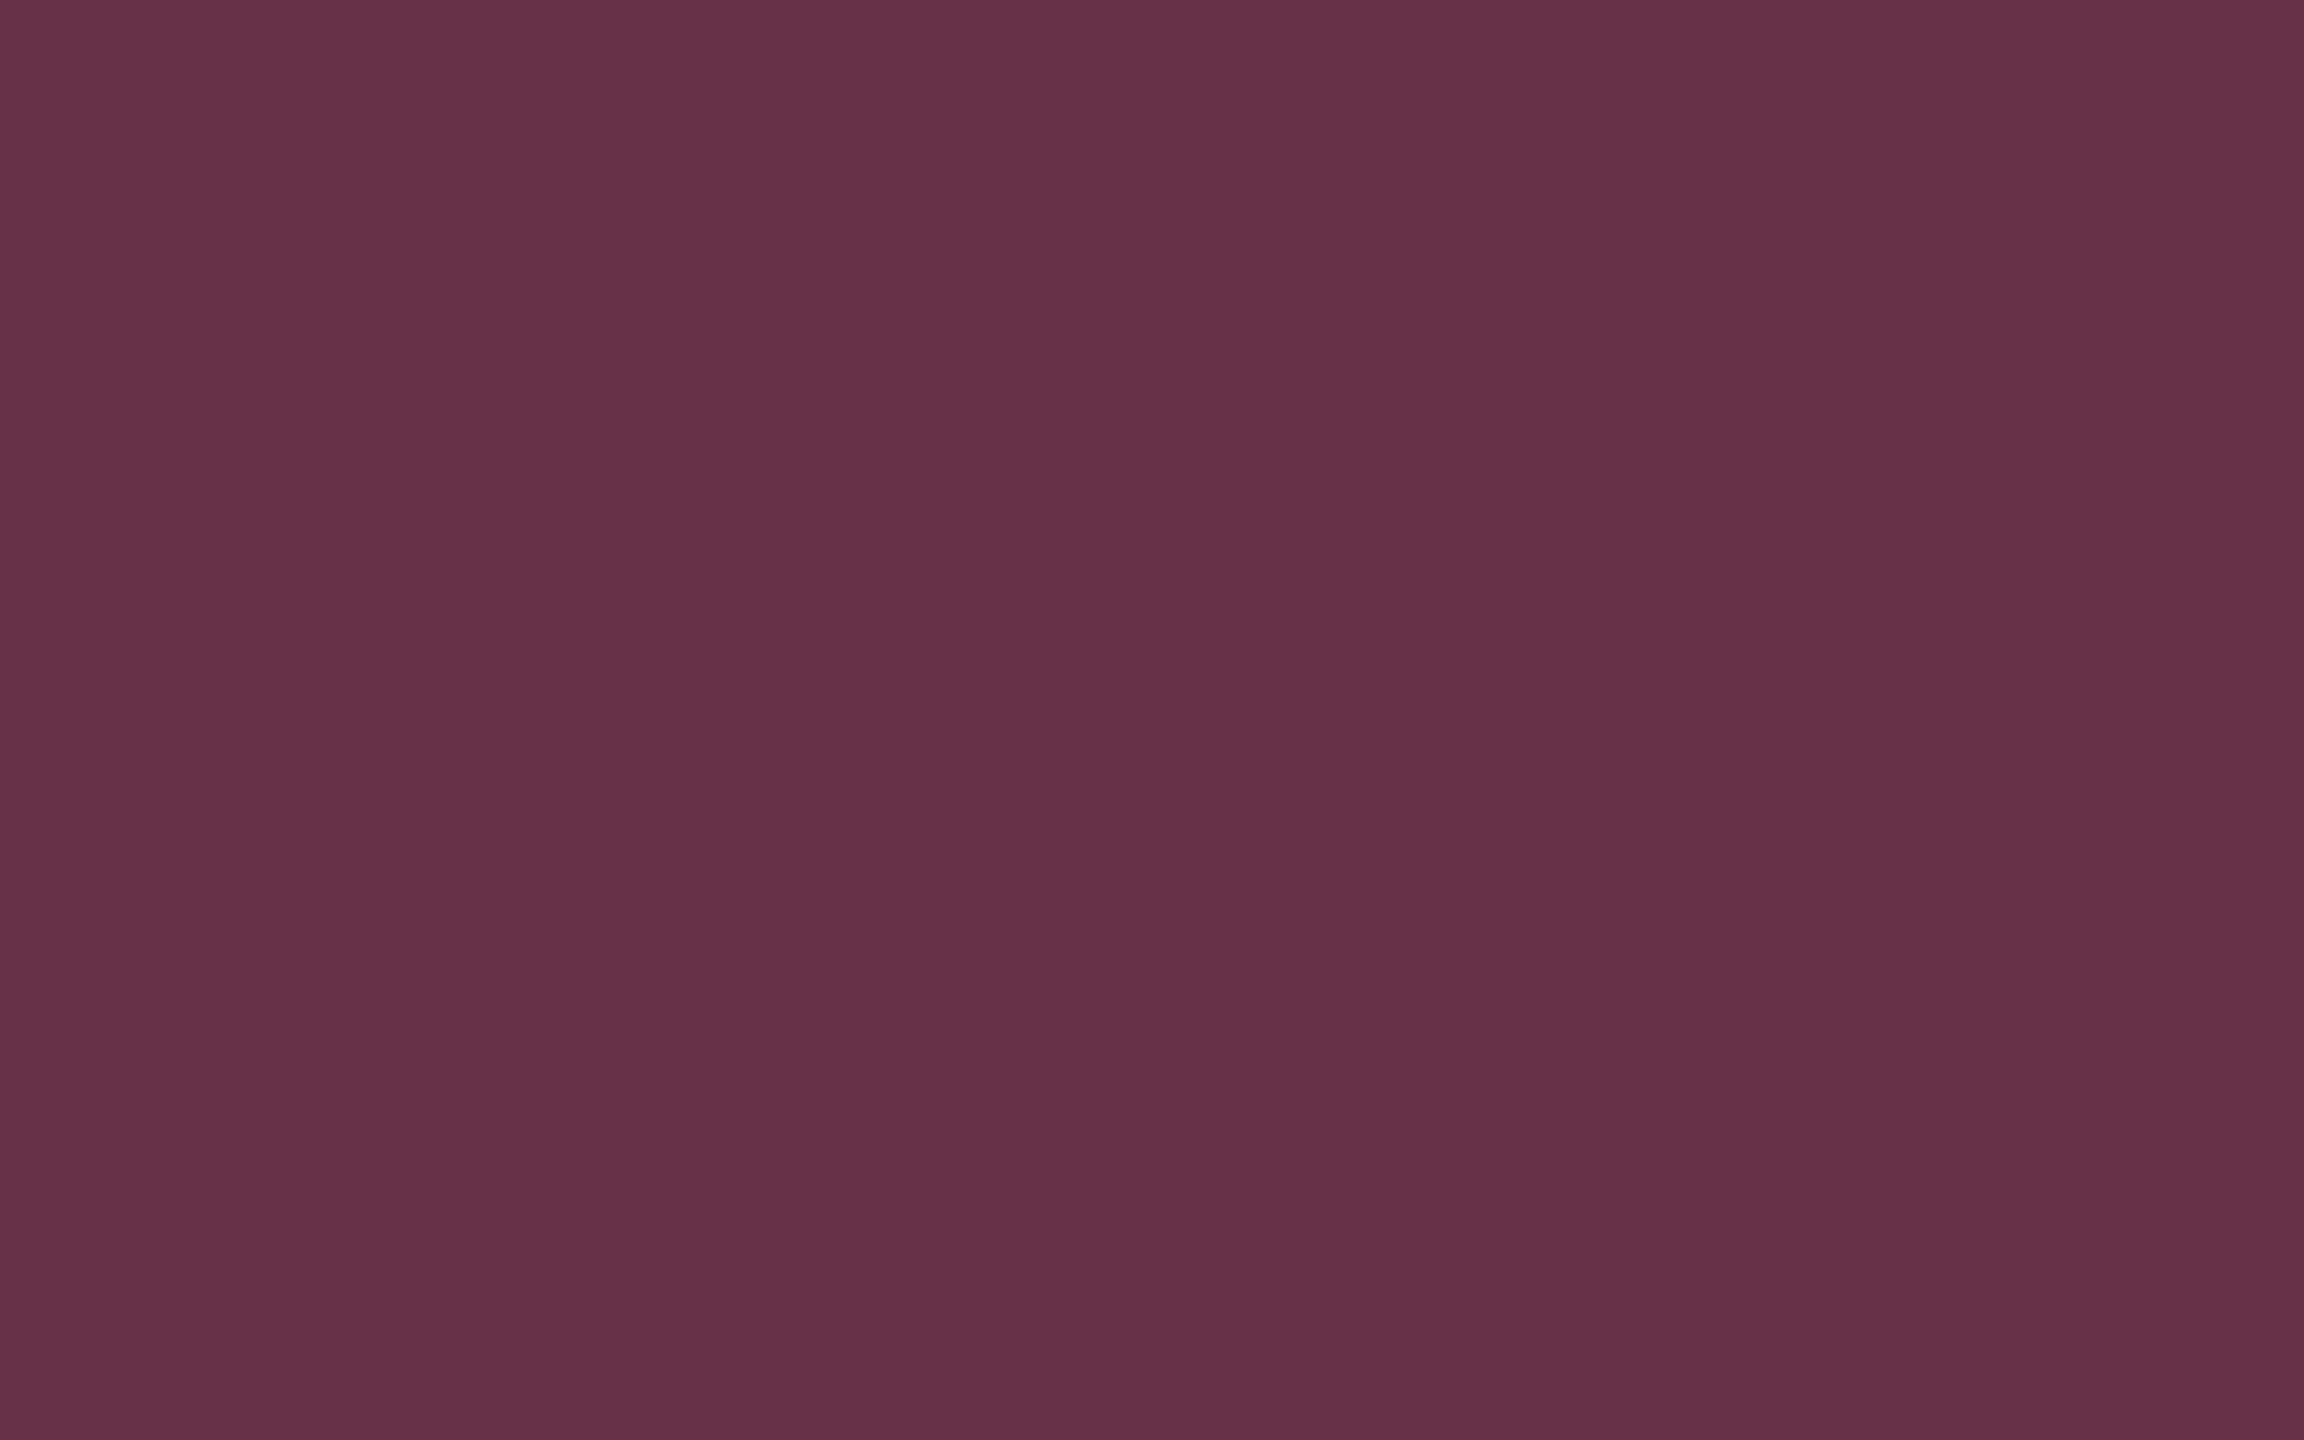 2304x1440 Wine Dregs Solid Color Background